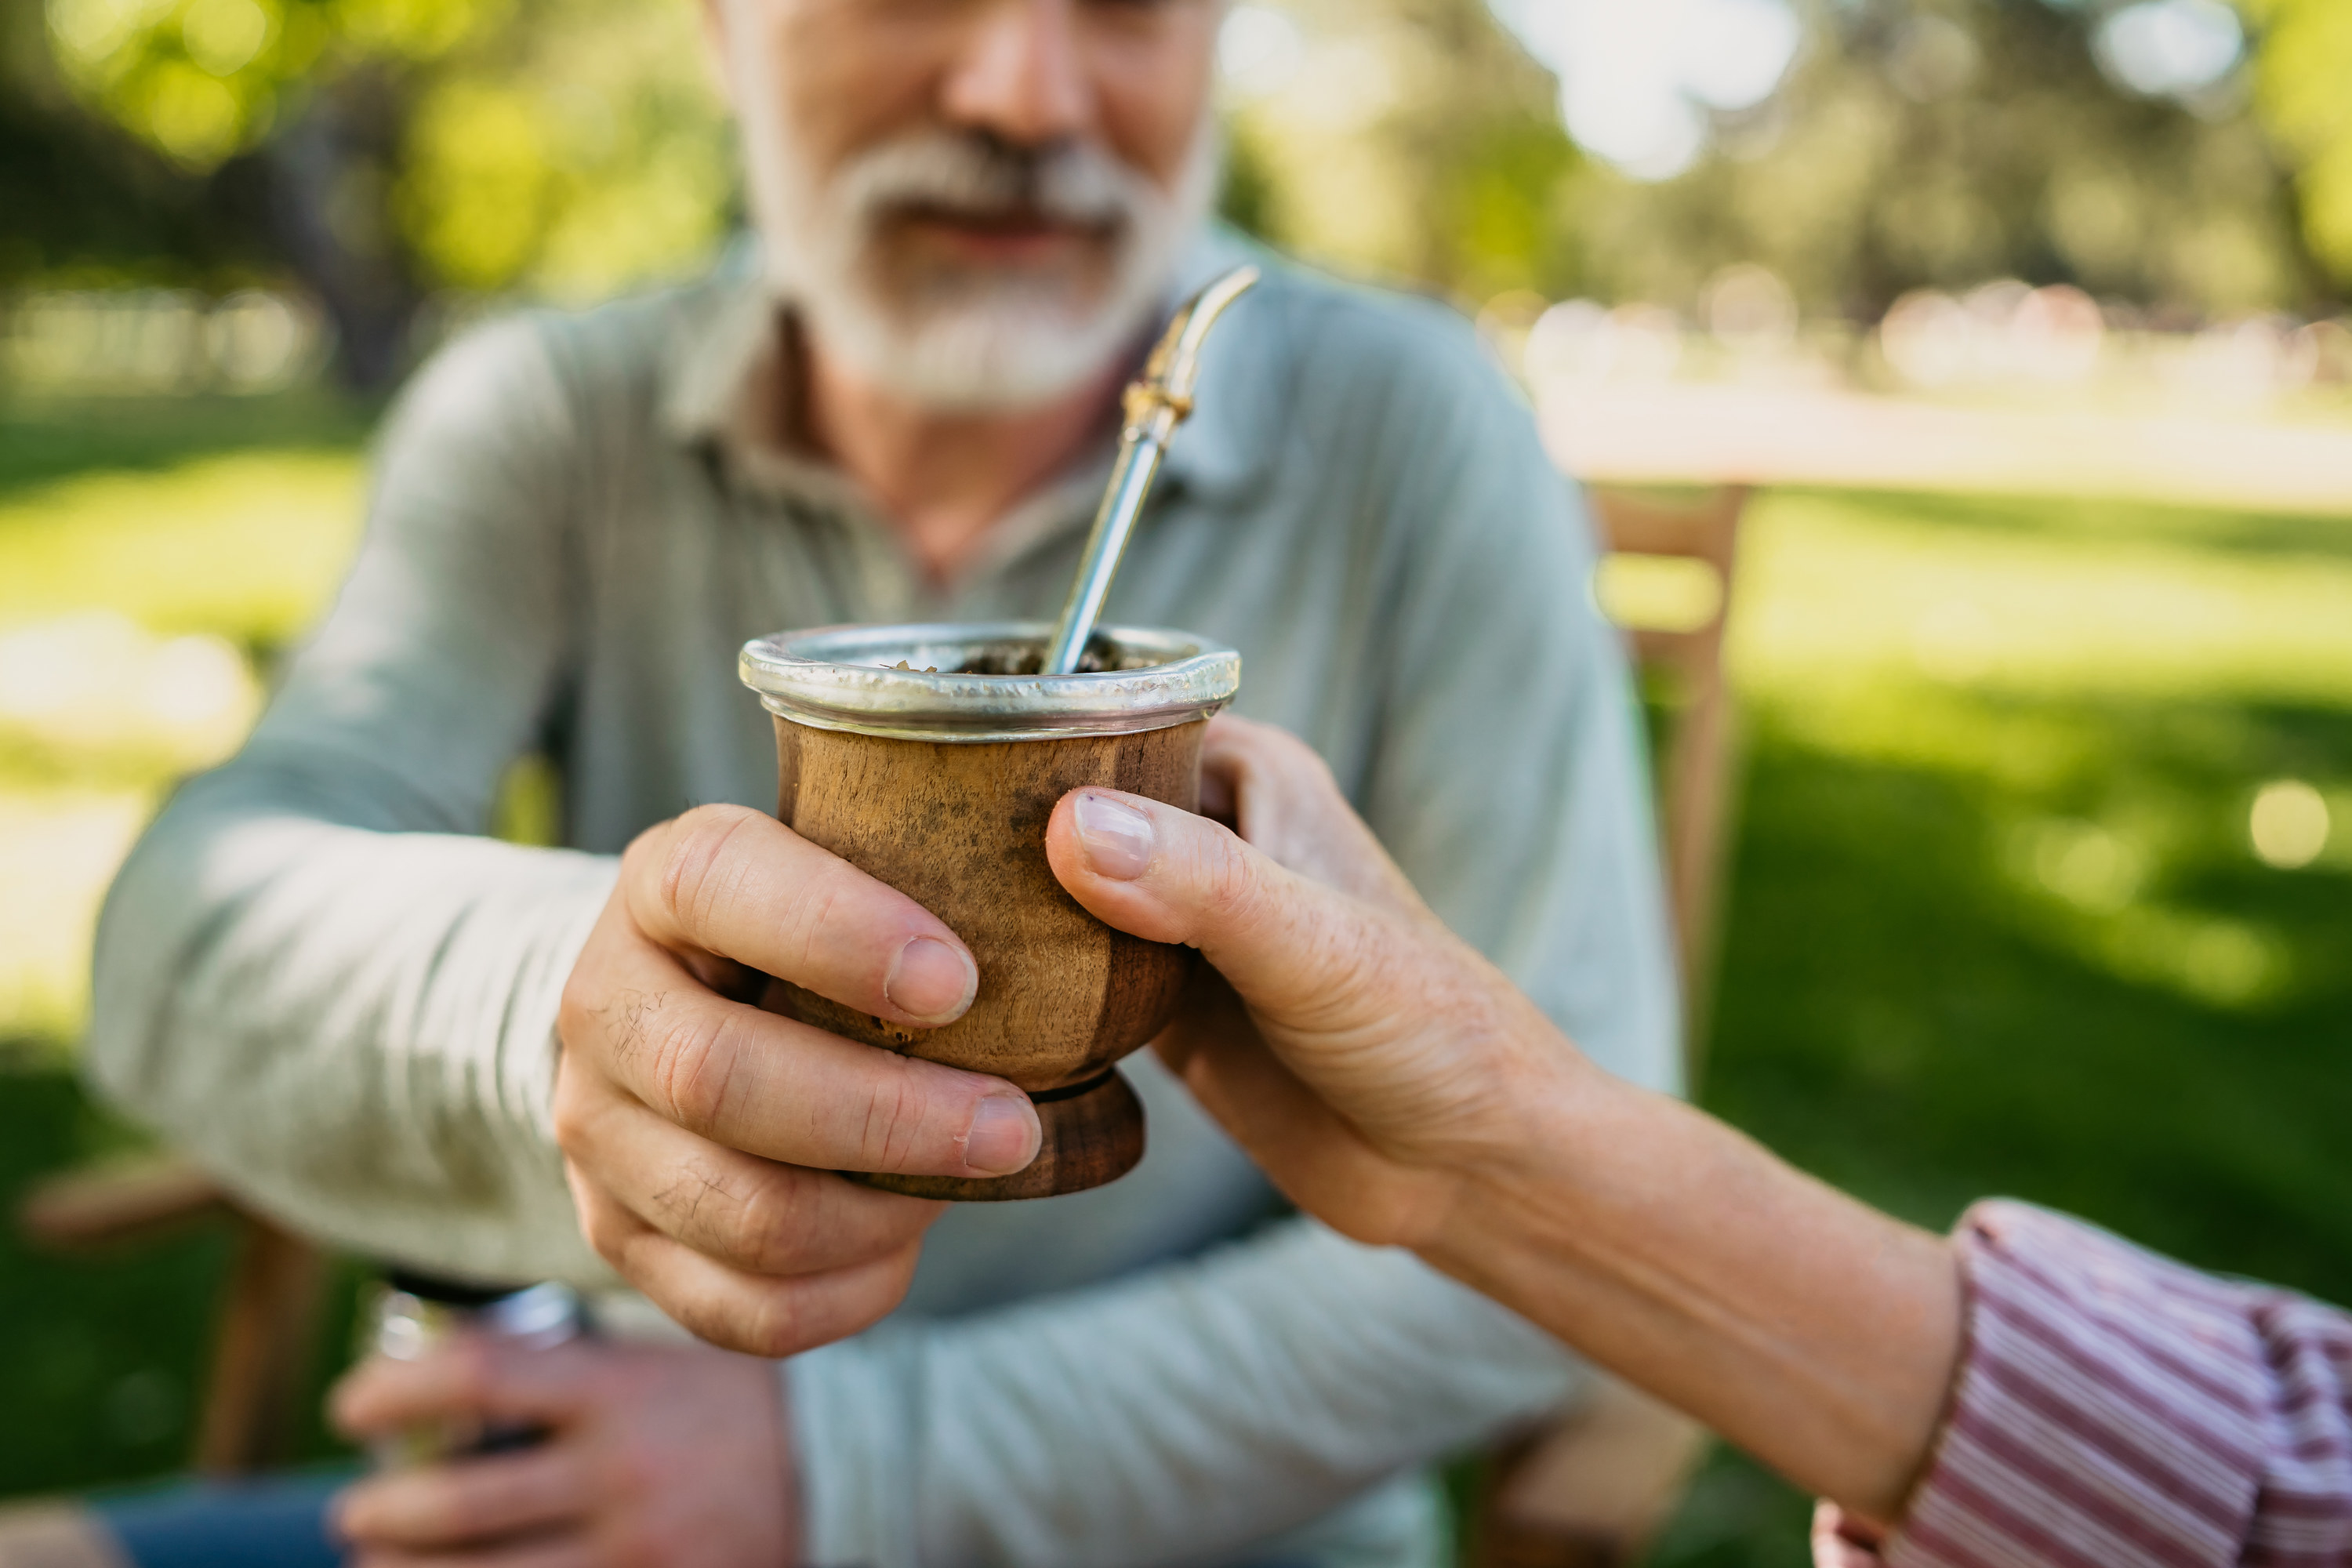 Two people pass a cup of Yerba mate with a metal straw in the cup